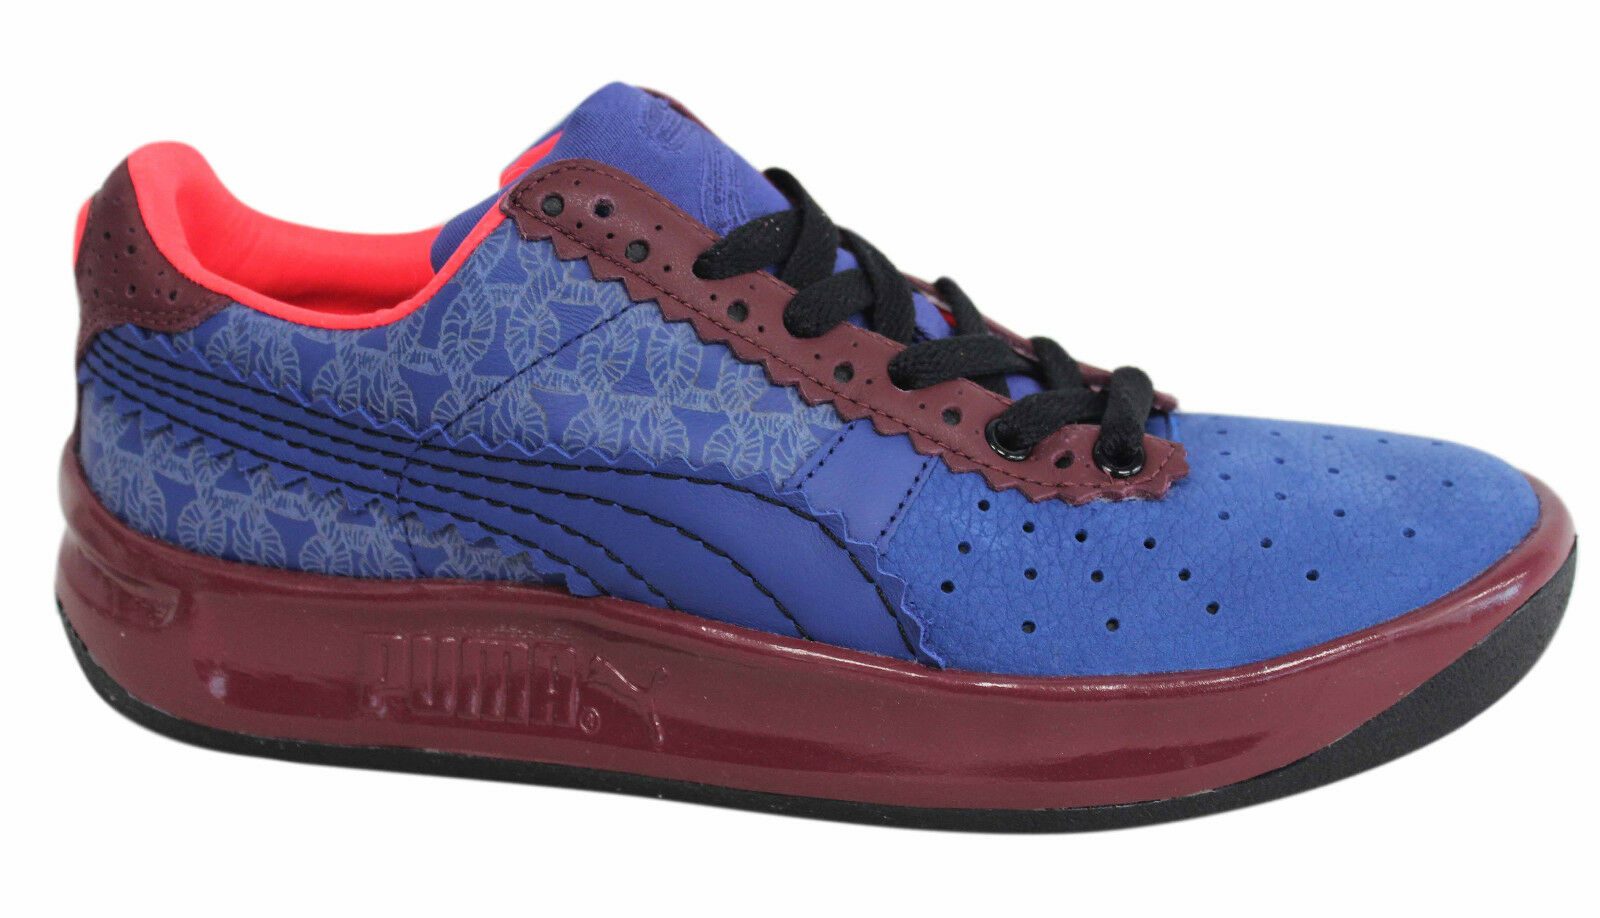 Puma GV Special X Sibling Ltd Edition Mens Navy Burgundy Trainers 358727 01 D21